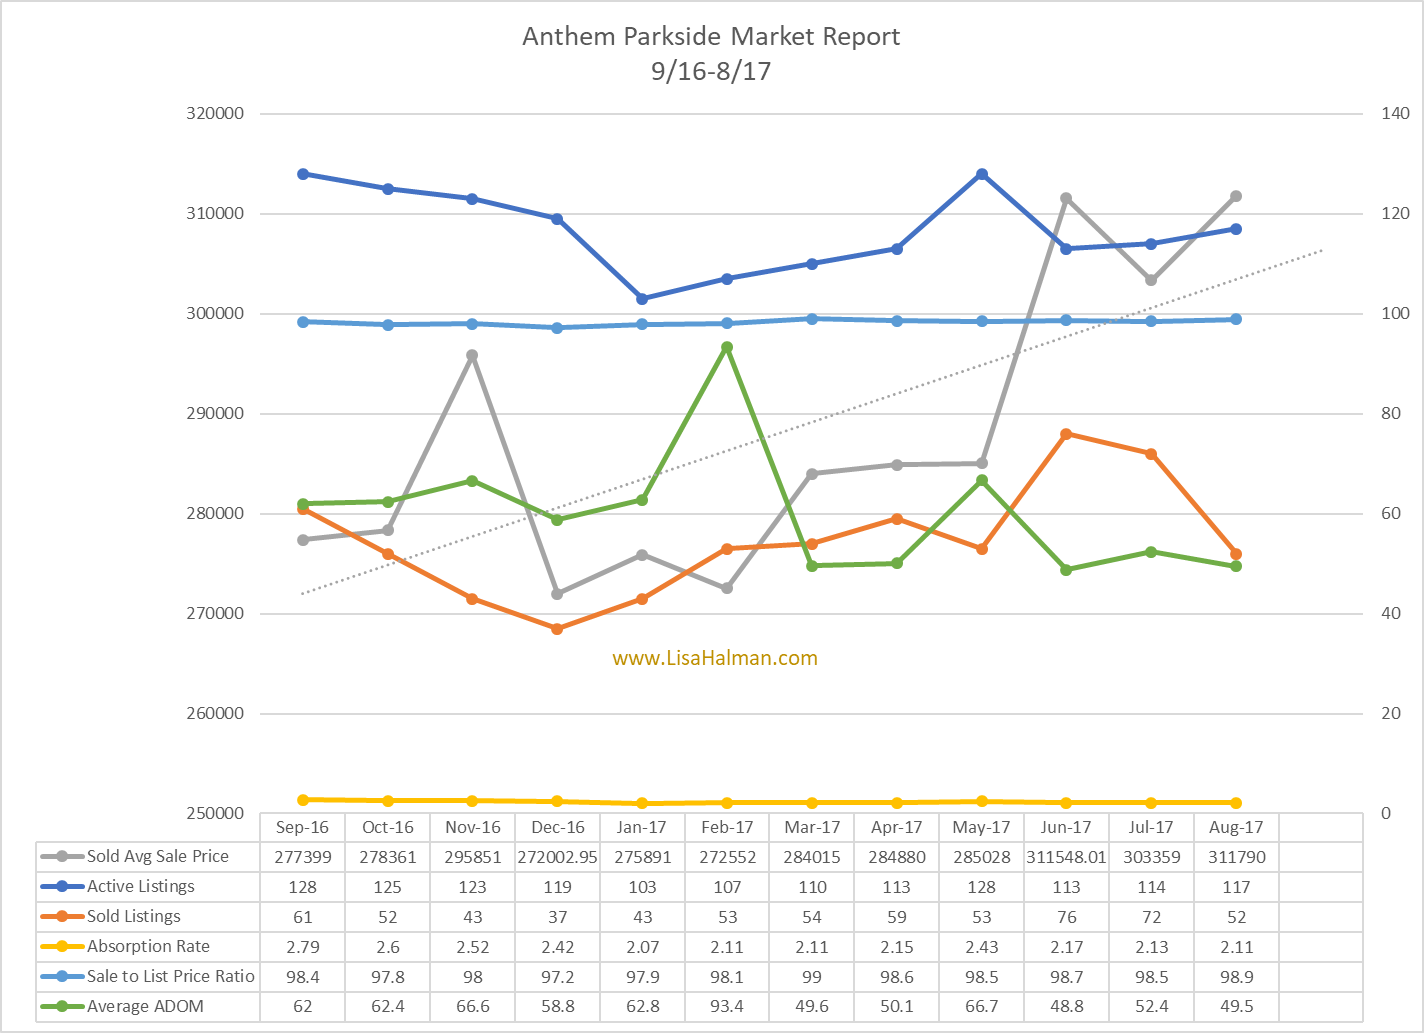 Anthem Parkside Market Update August 2017